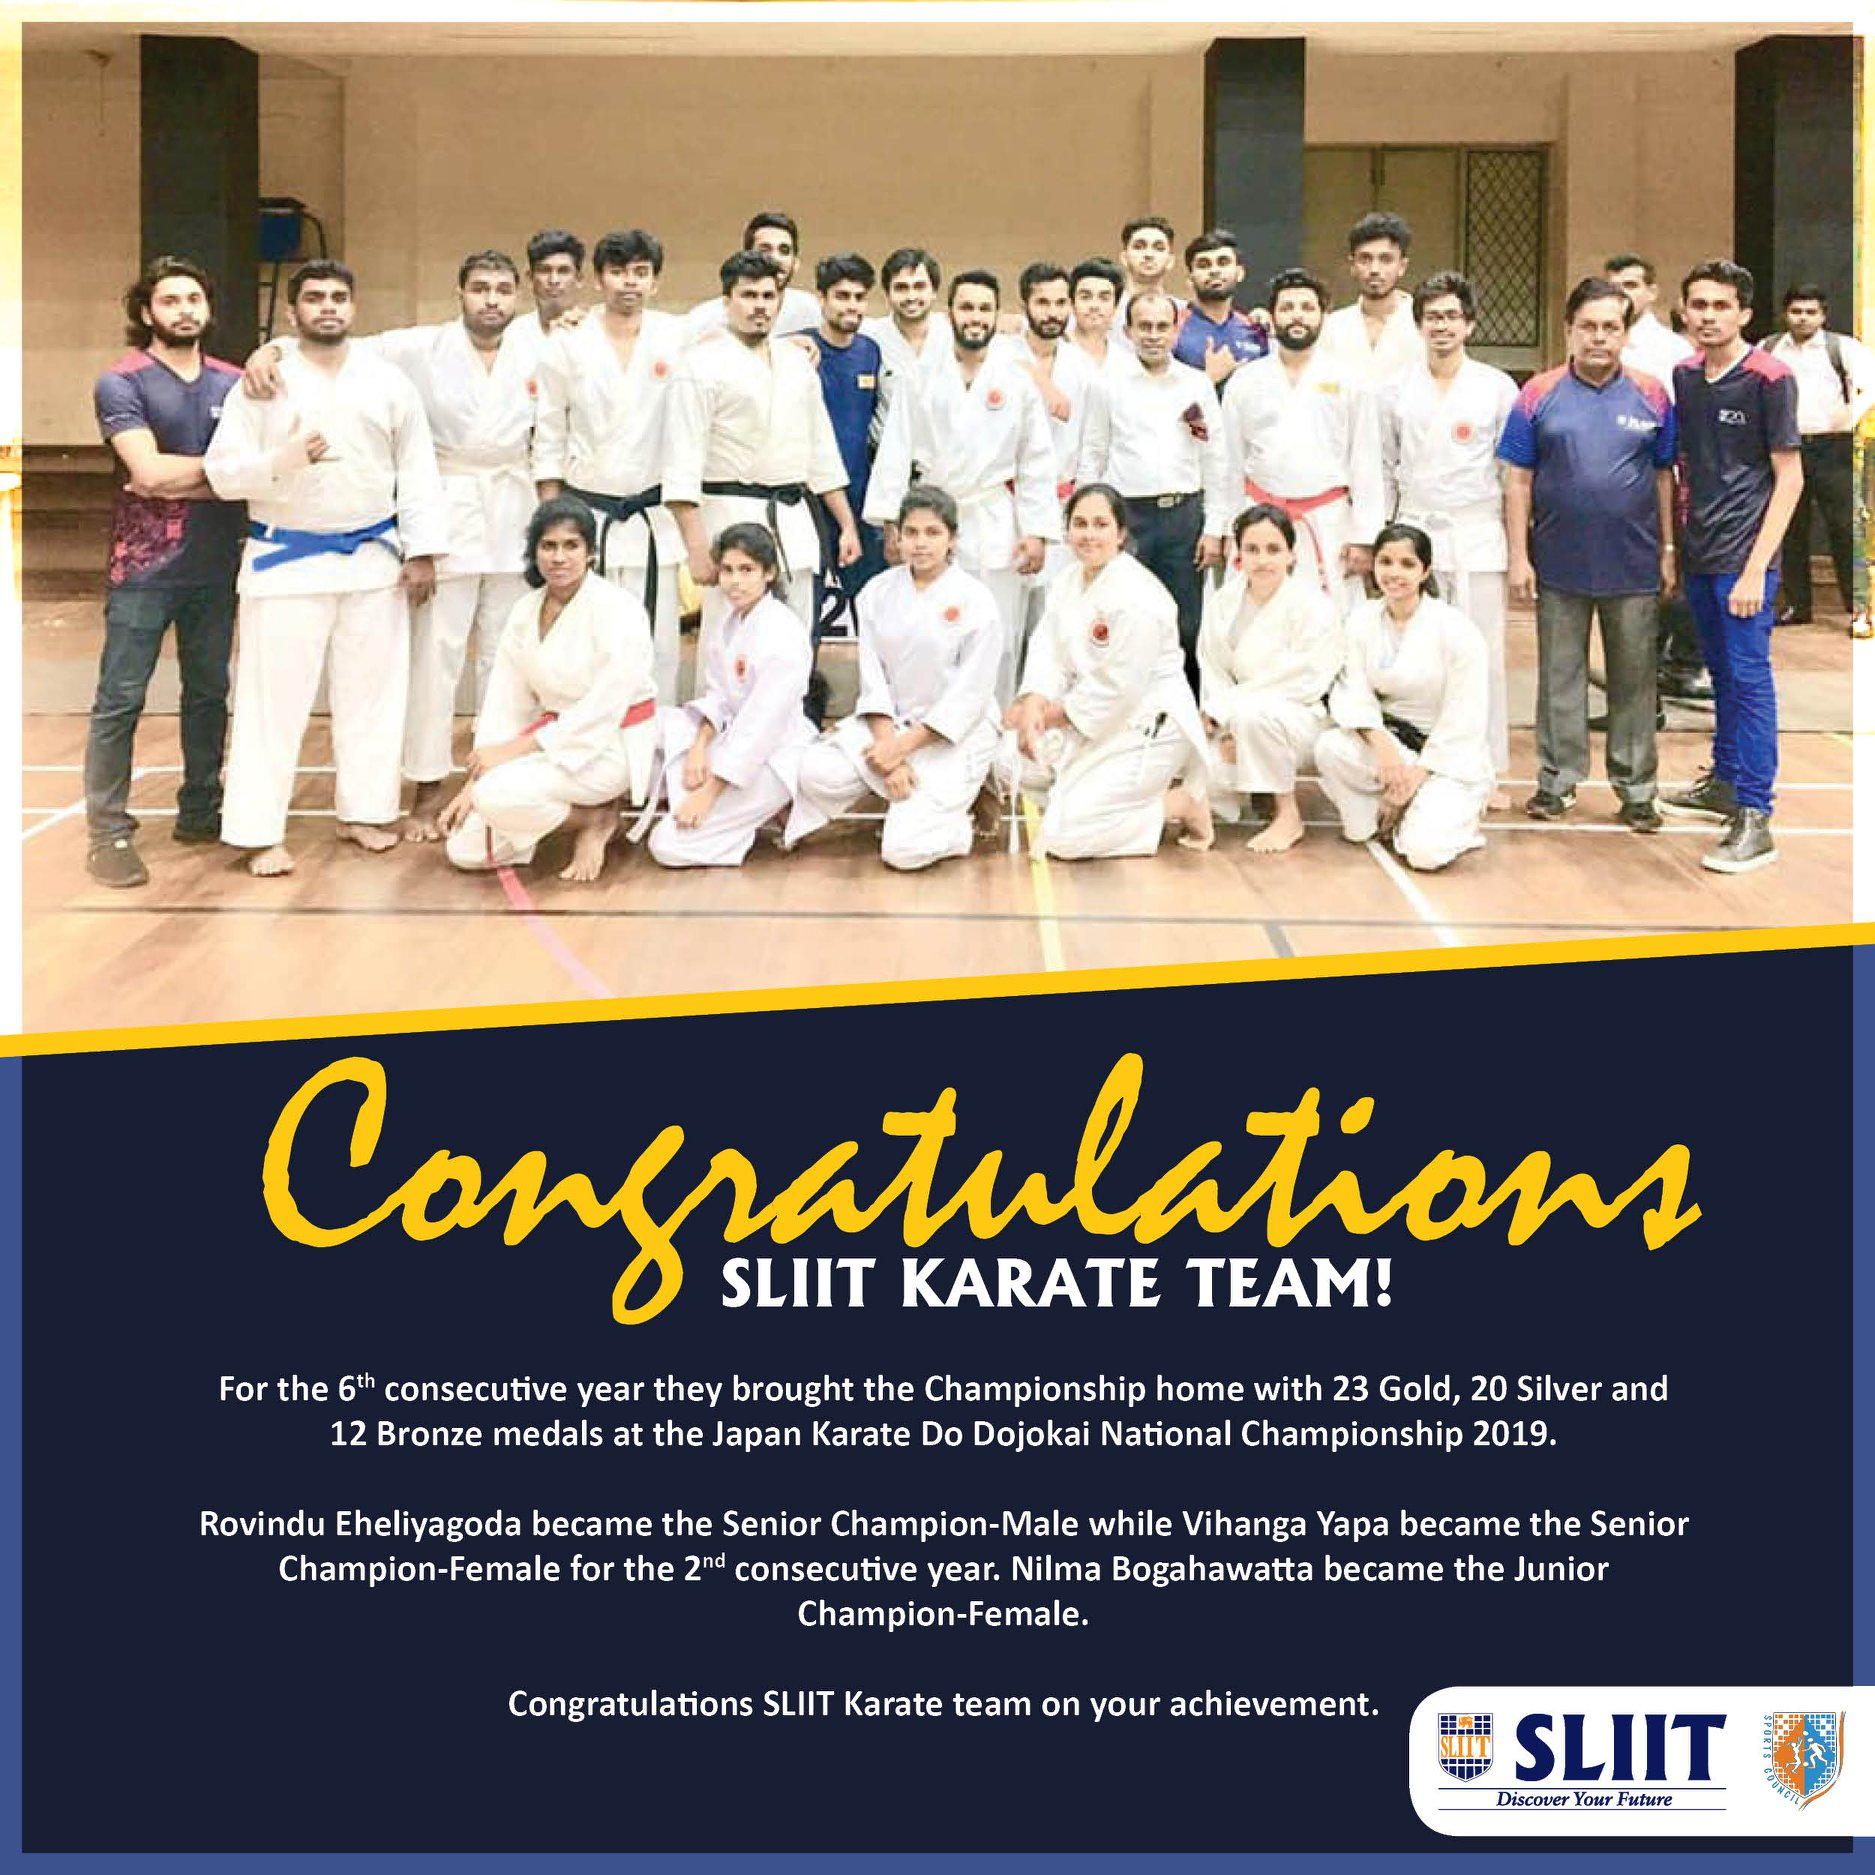 Congratulations-SLIIT-Karate-team-on-your-achievement